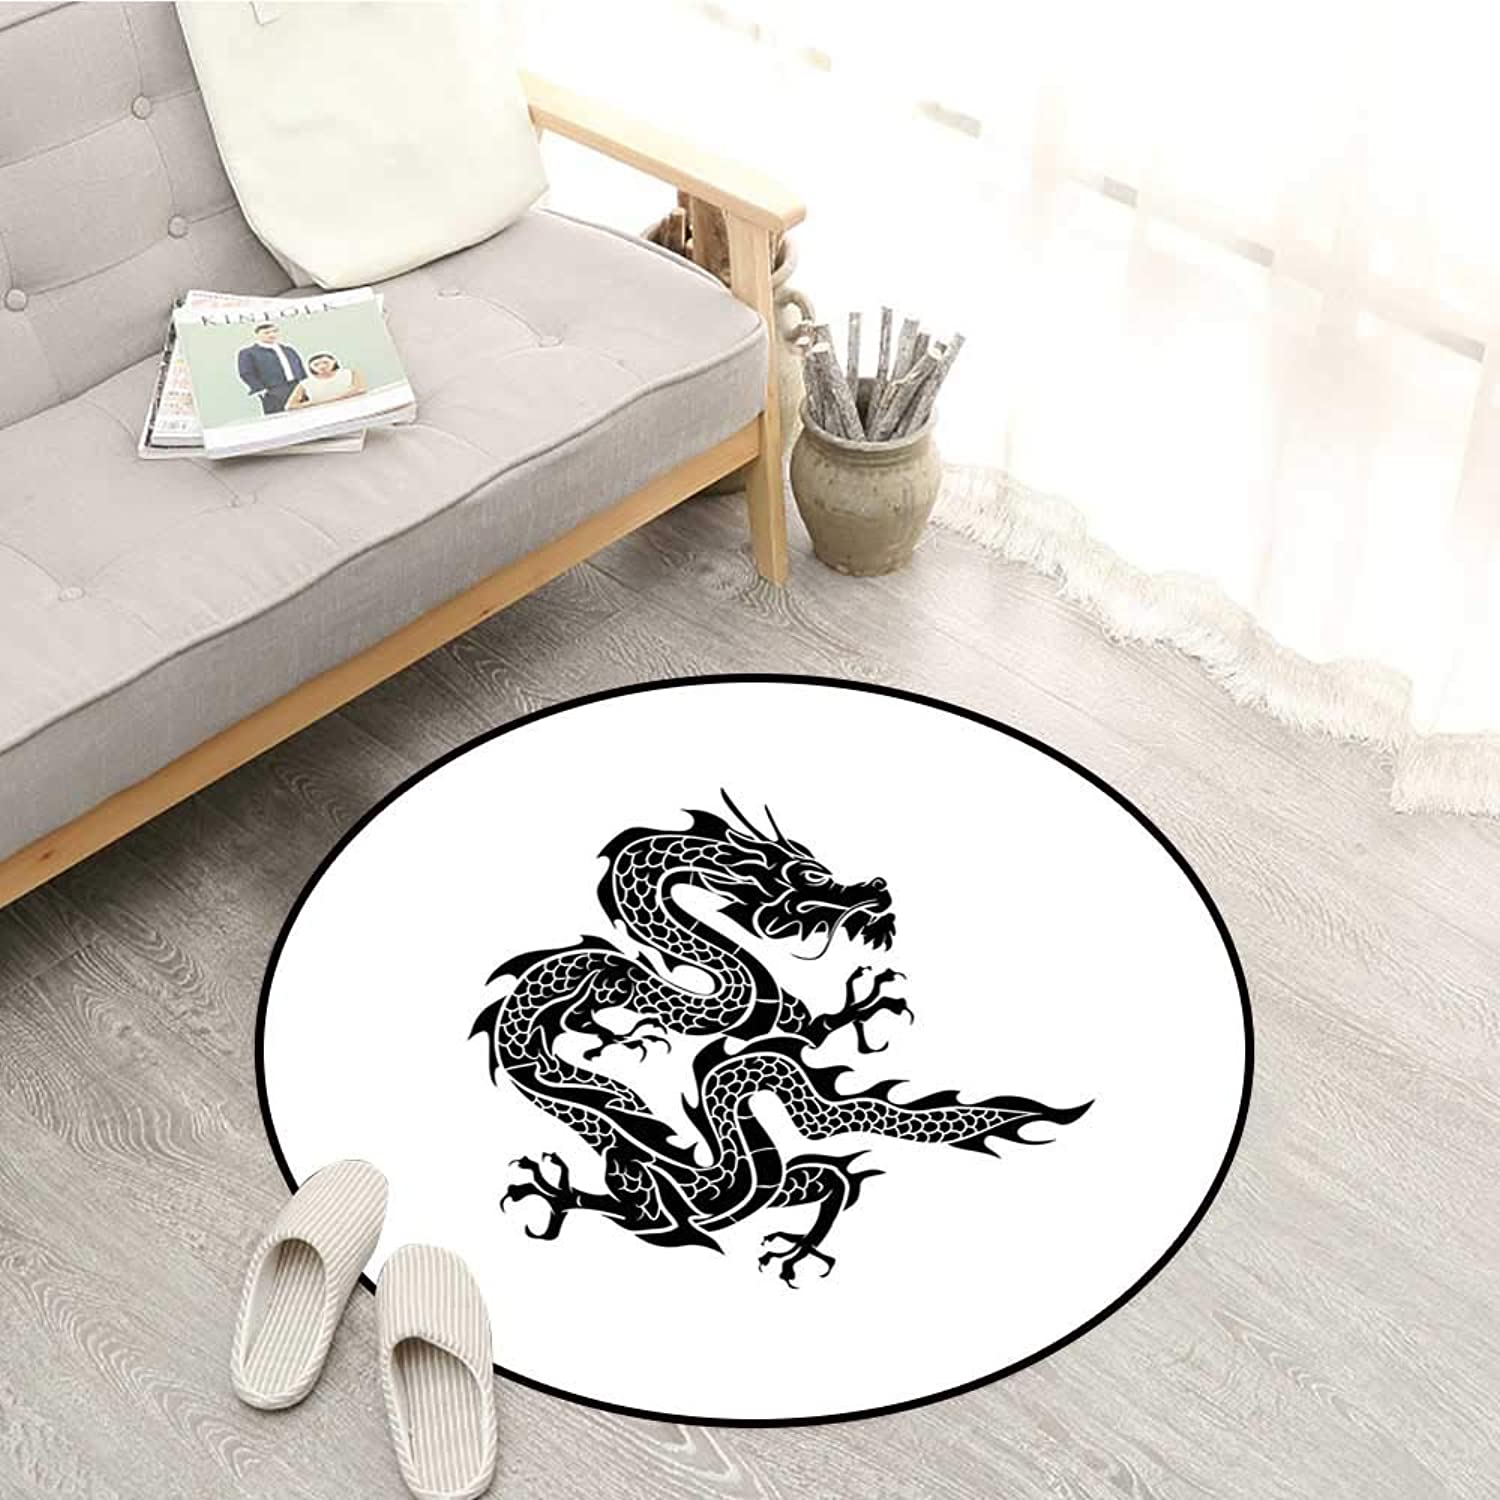 Japanese Dragon Non-Slip Rugs Cultural Zodiac Icon Monochrome Graphic Style Eastern Dragon Claws Scales Sofa Coffee Table Mat 3'11  Black White